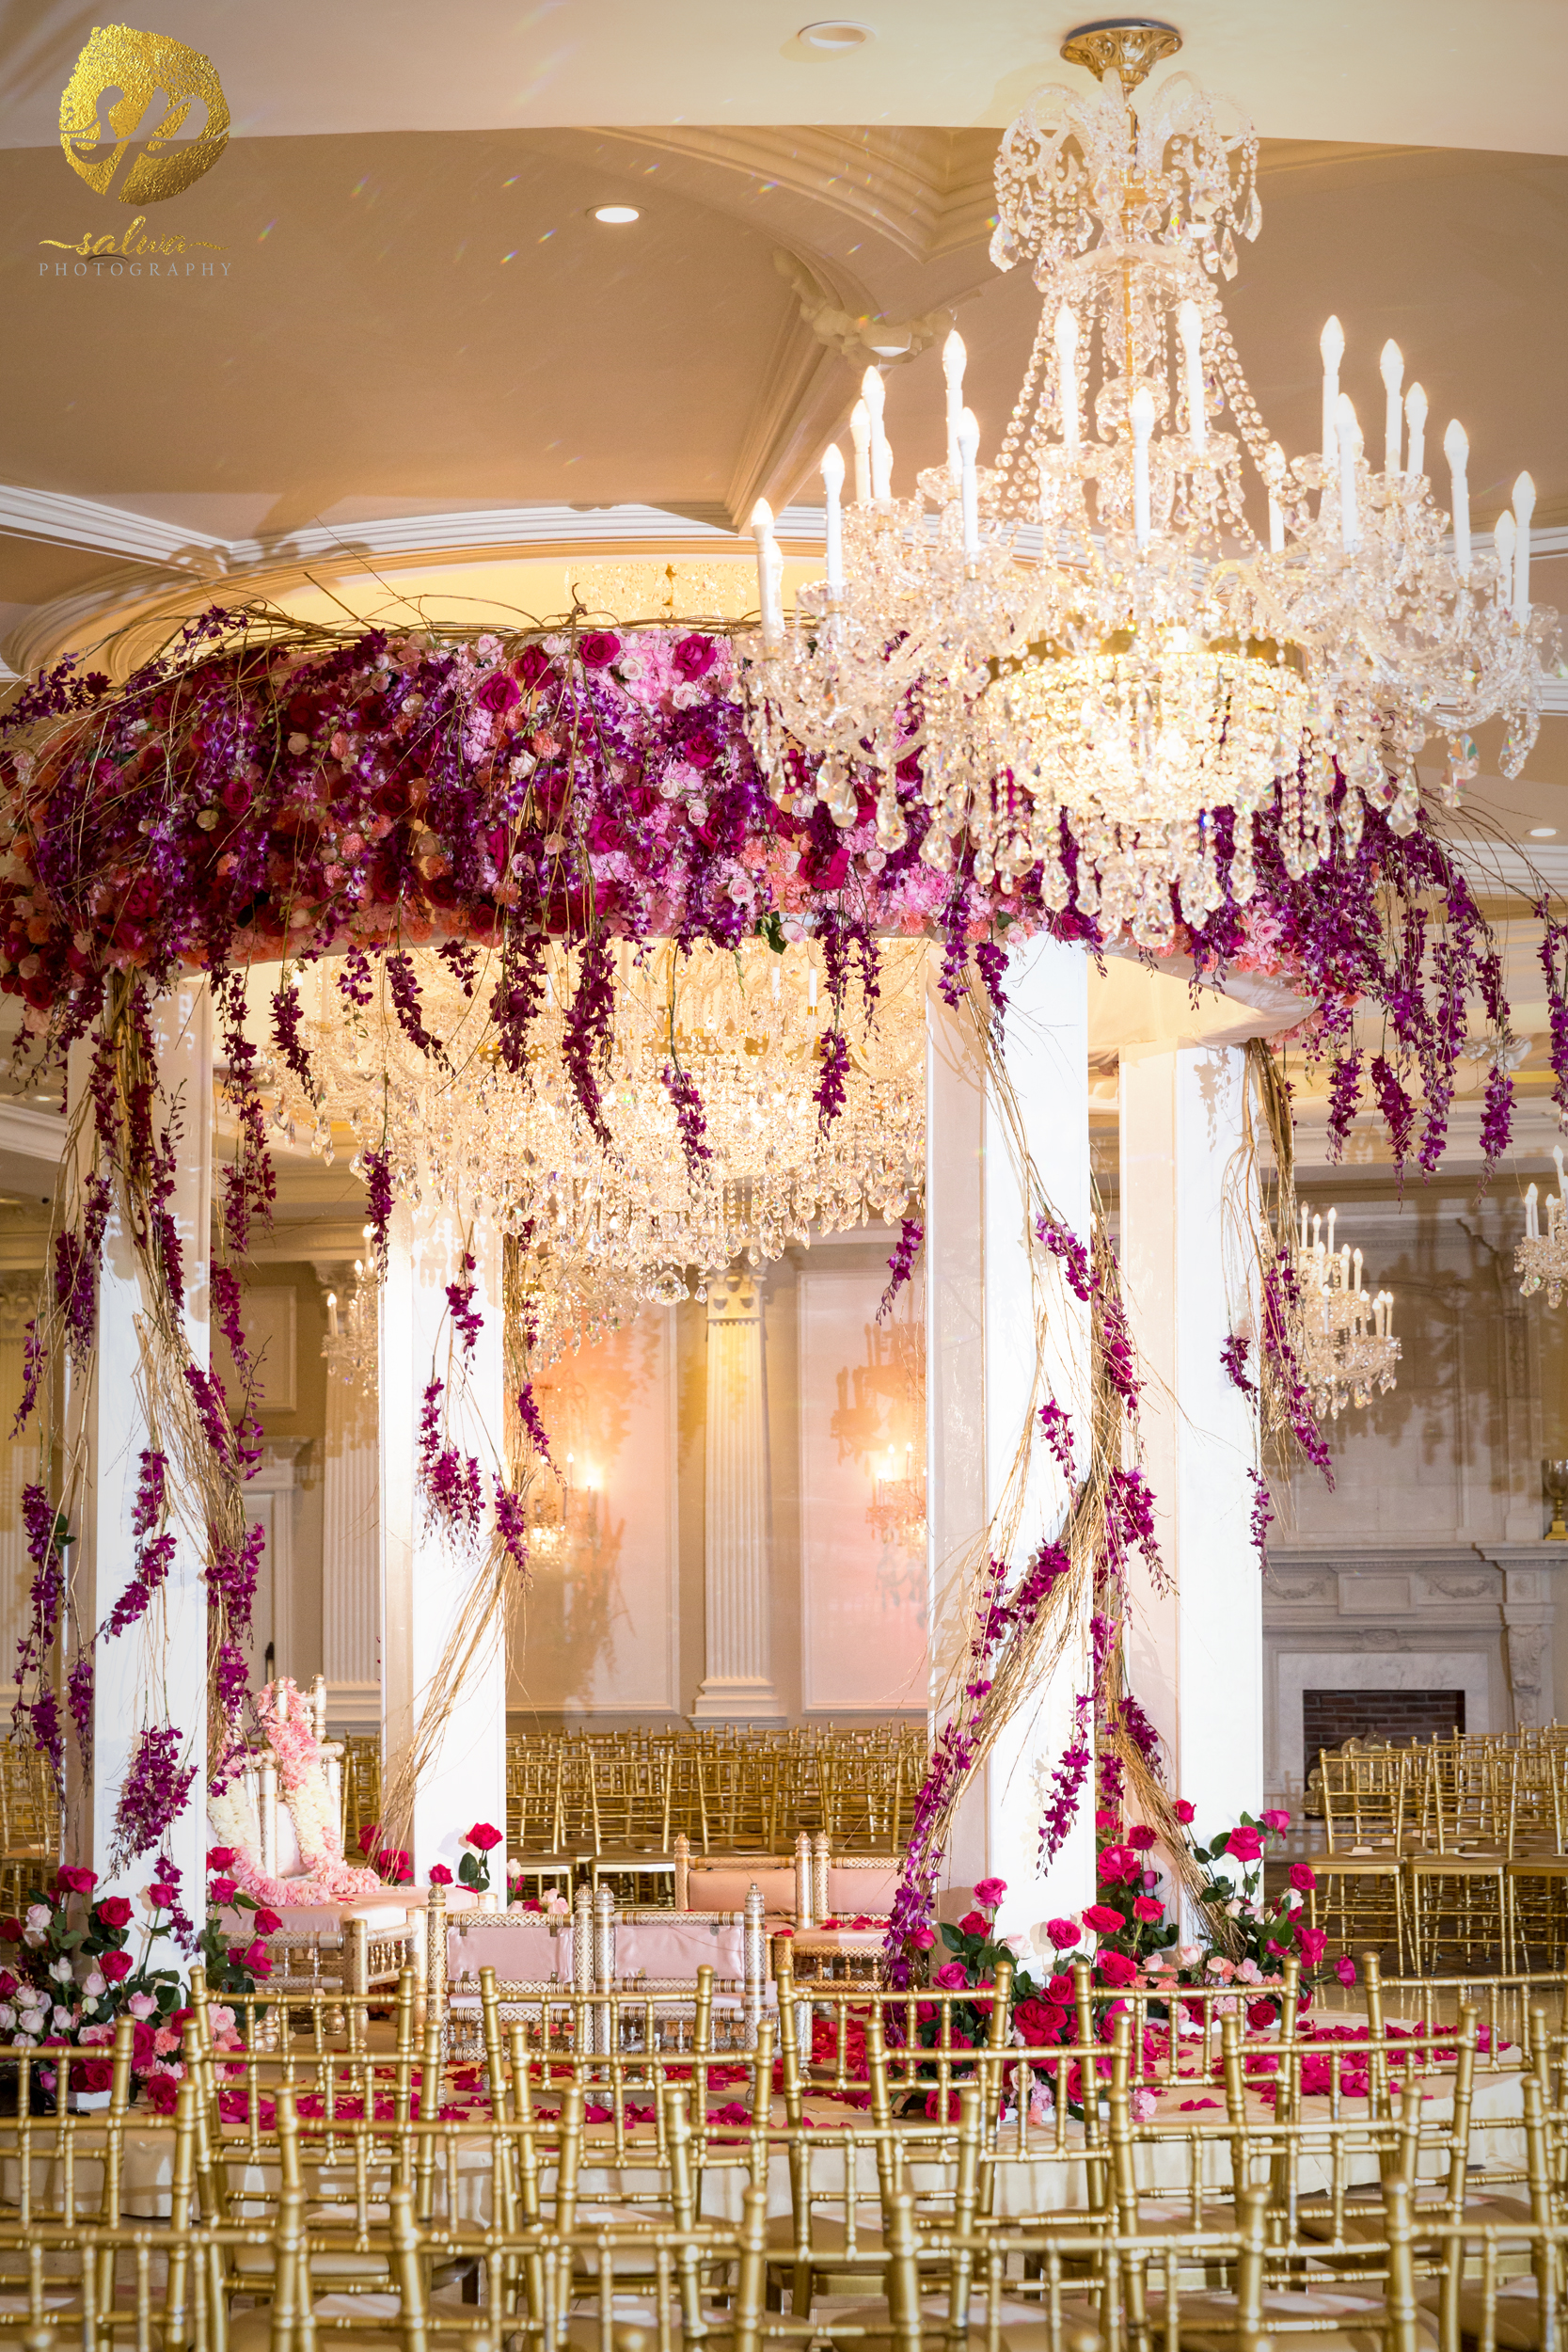 Romantic Blooming Wedding - Sonal J. Shah Event Consultants